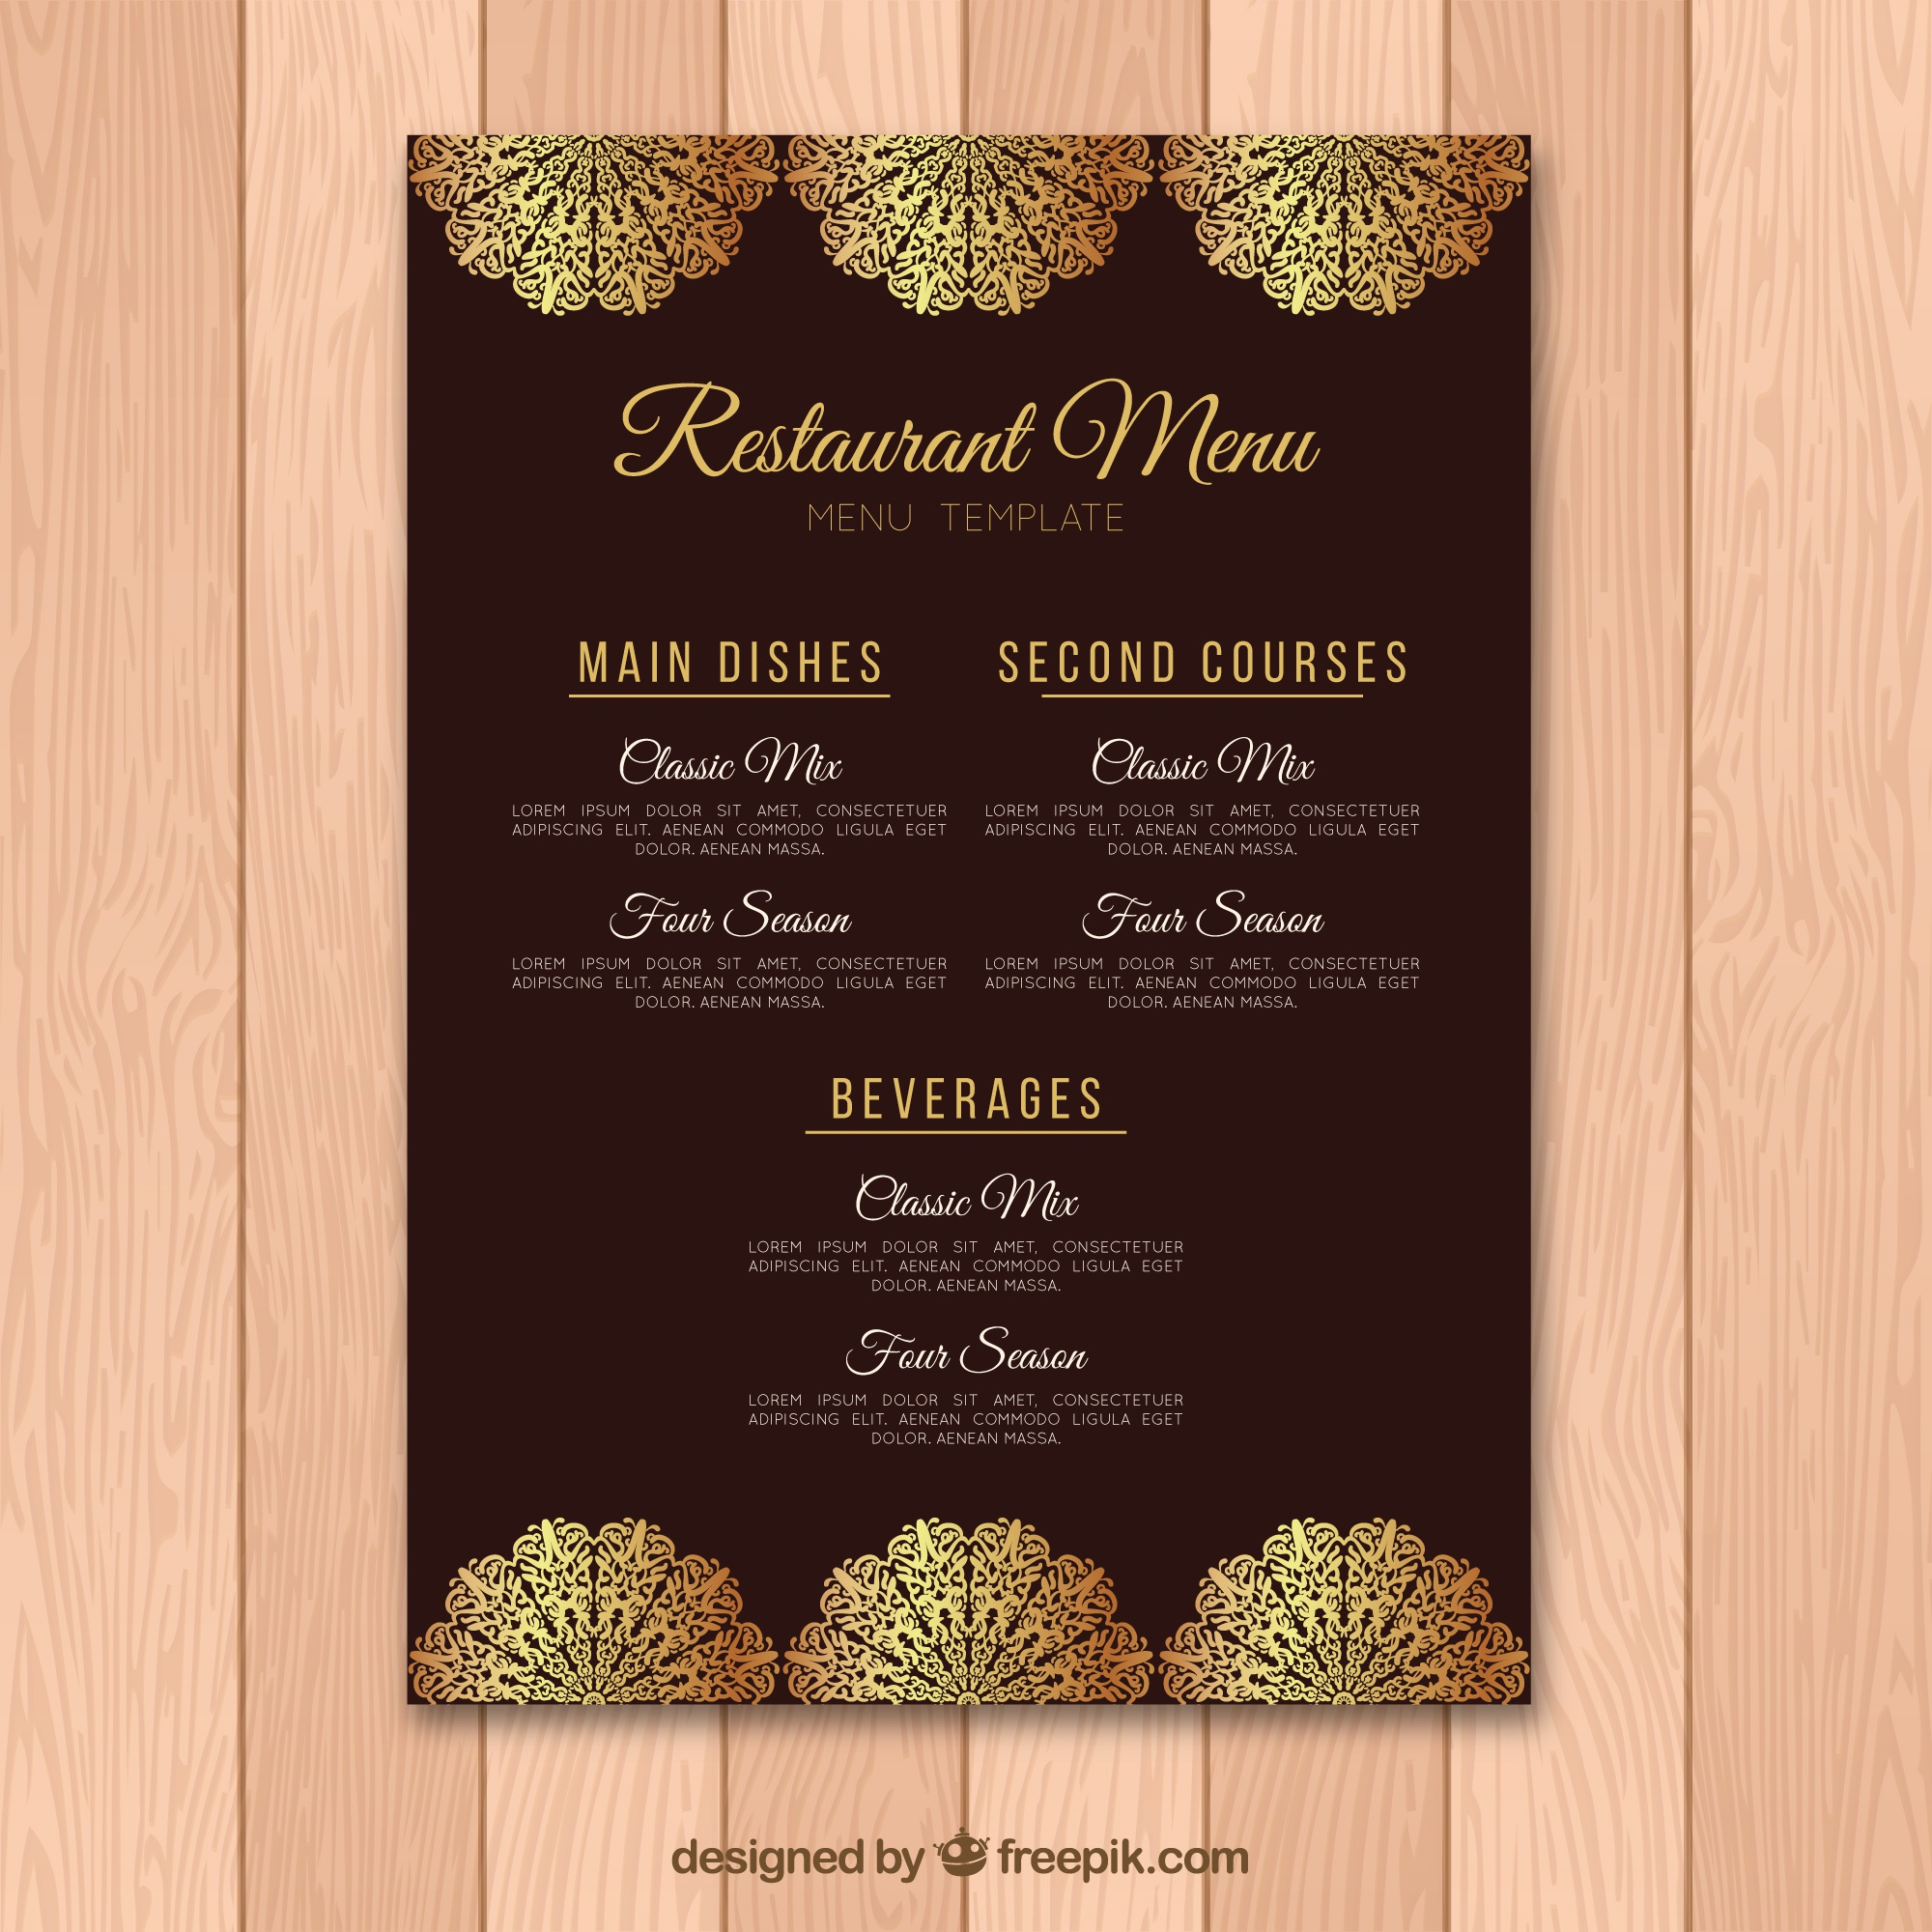 Lovely menu template with golden elements